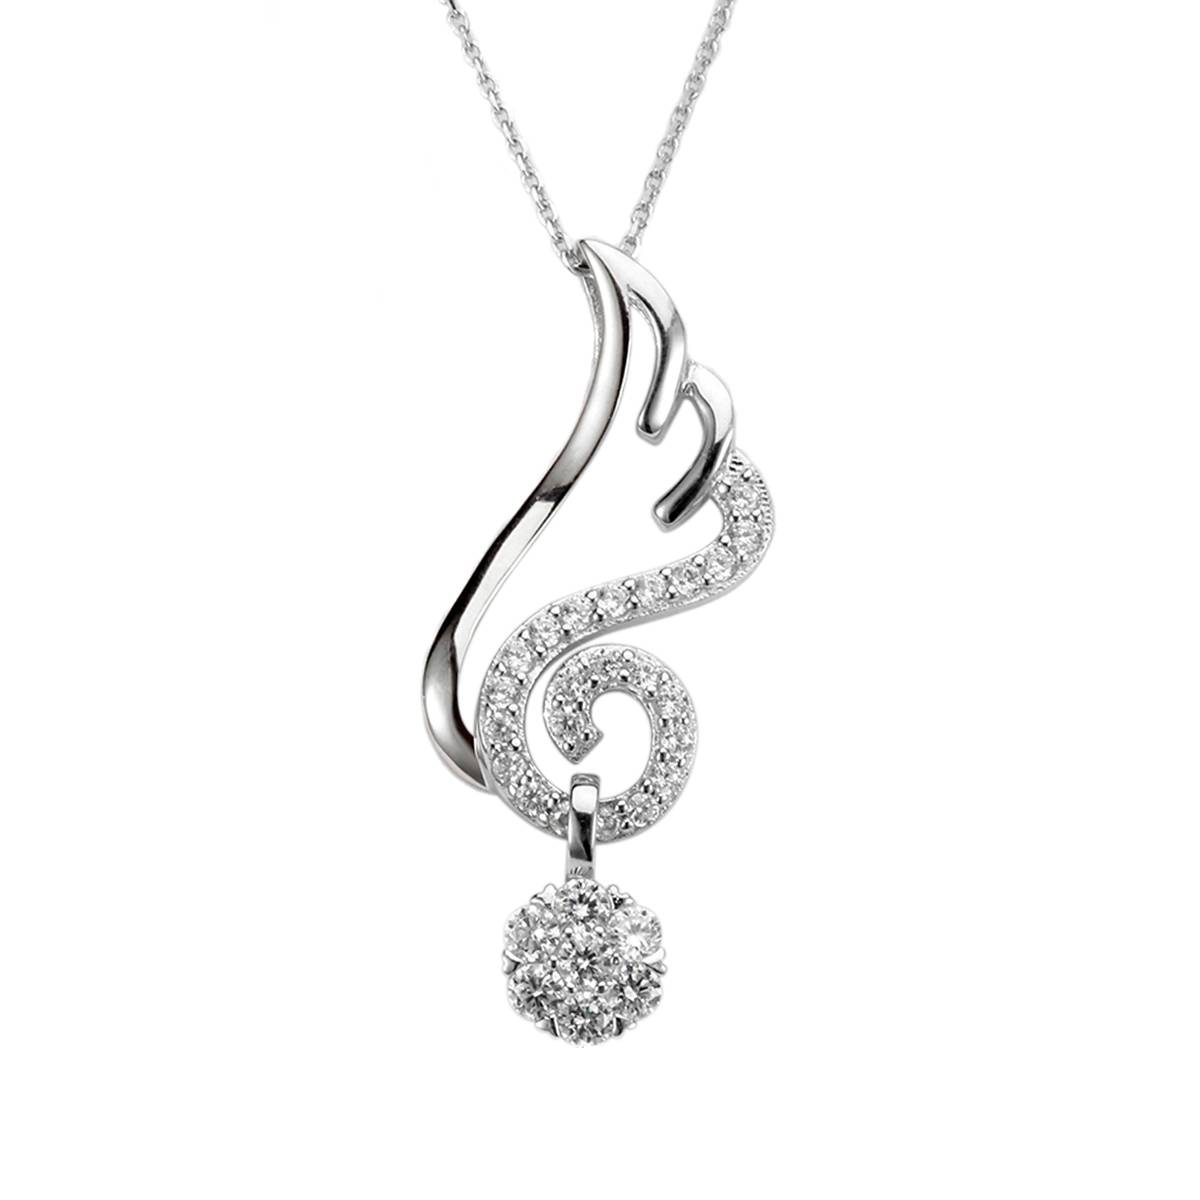 Fashion Women Jewelry 925 Silver Angel Wing Necklace Angel's Tempt Pendant for Women Birthday Gift